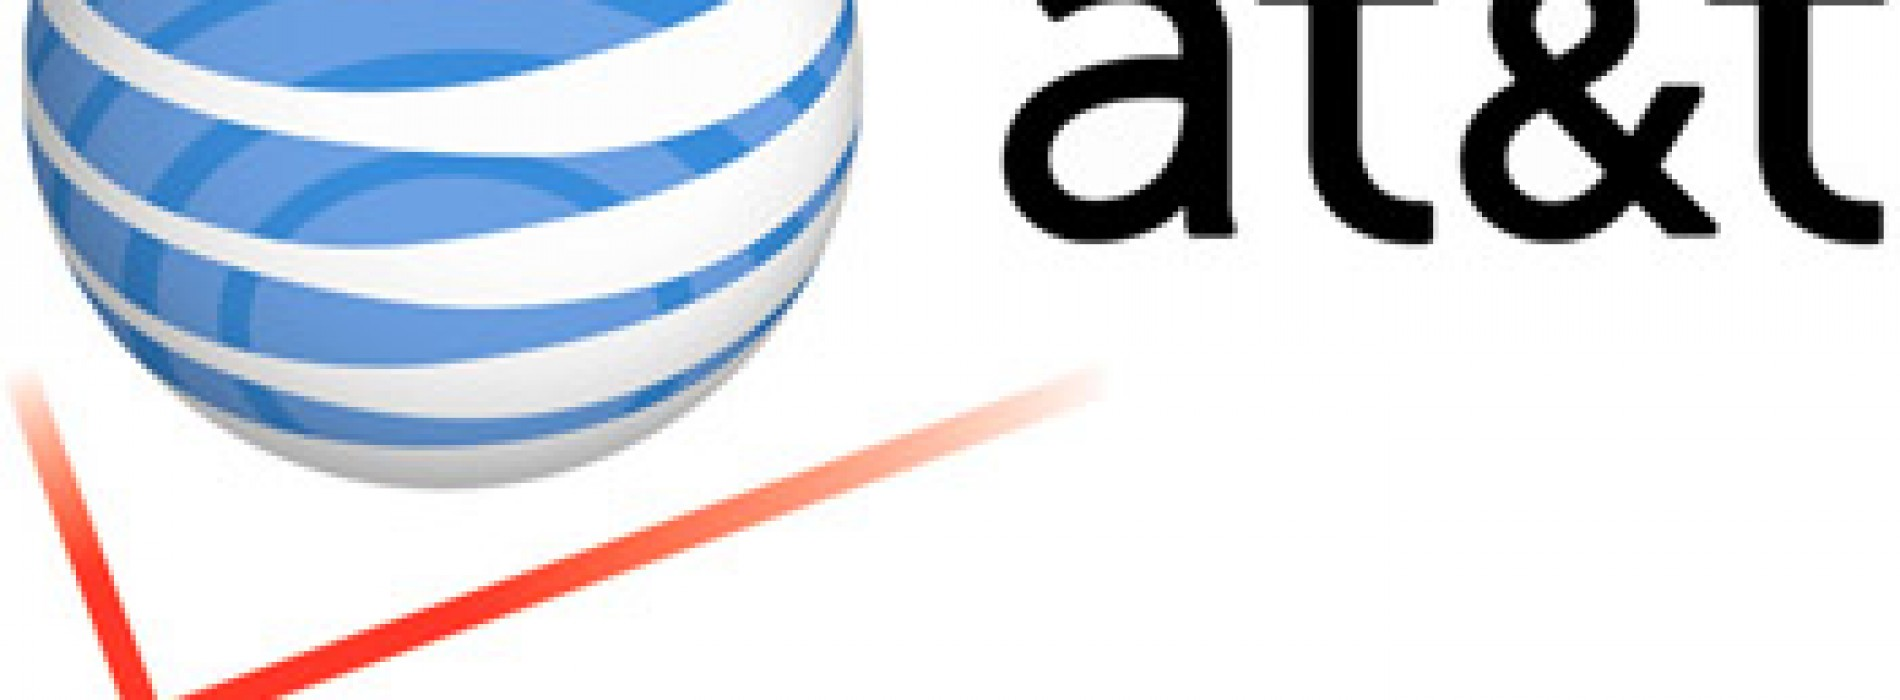 Consumer Reports releases mobile carrier rankings: AT&T worst, Verizon best